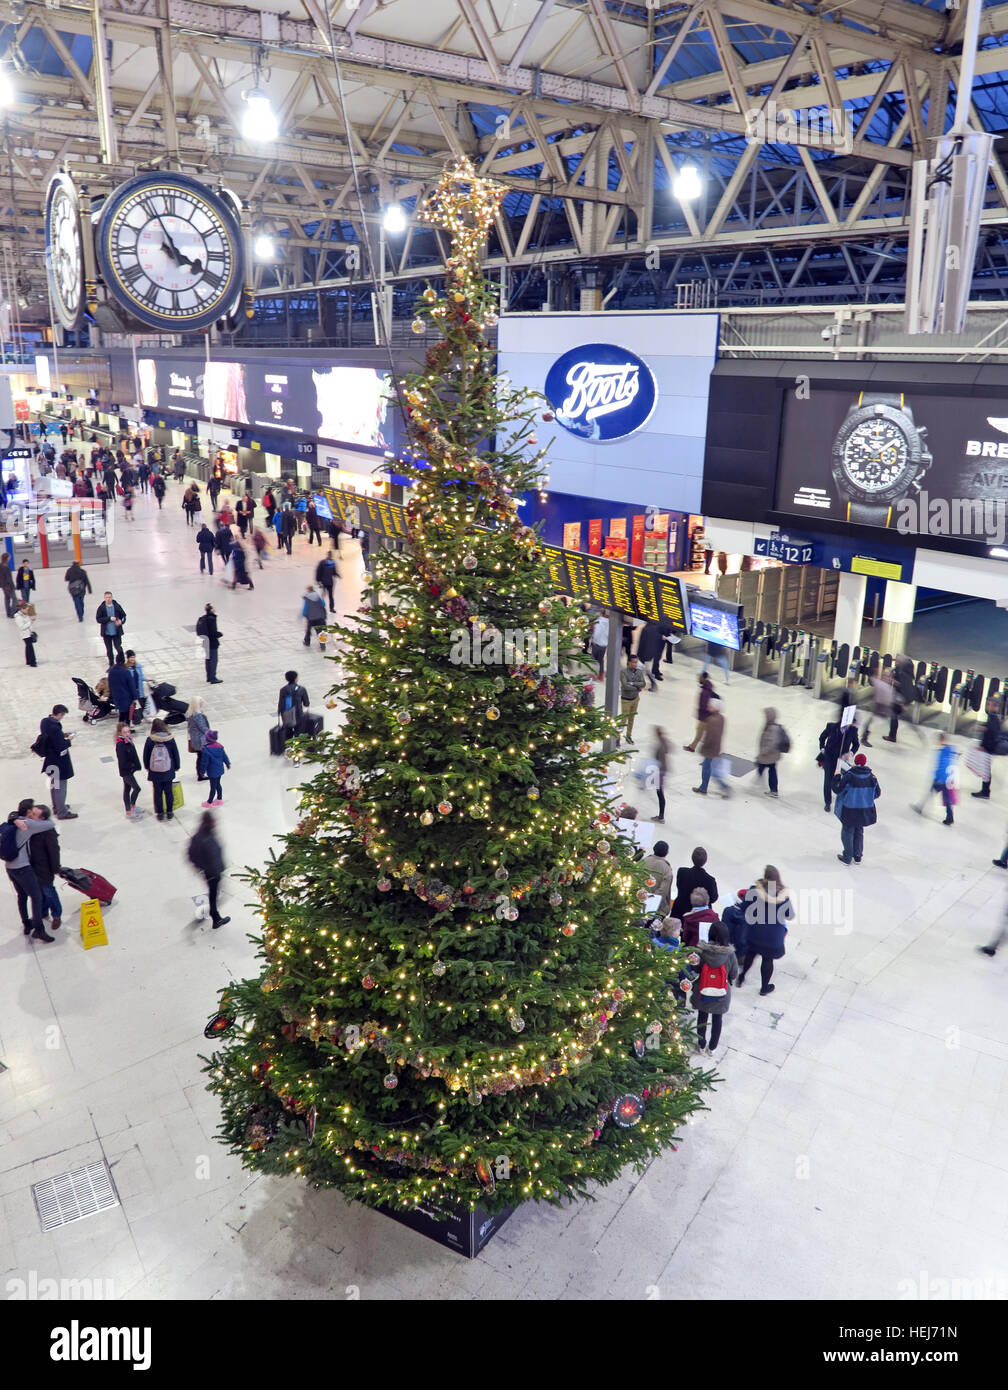 Waterloo Station, London at Christmas,December, Central London,England UK - Stock Image